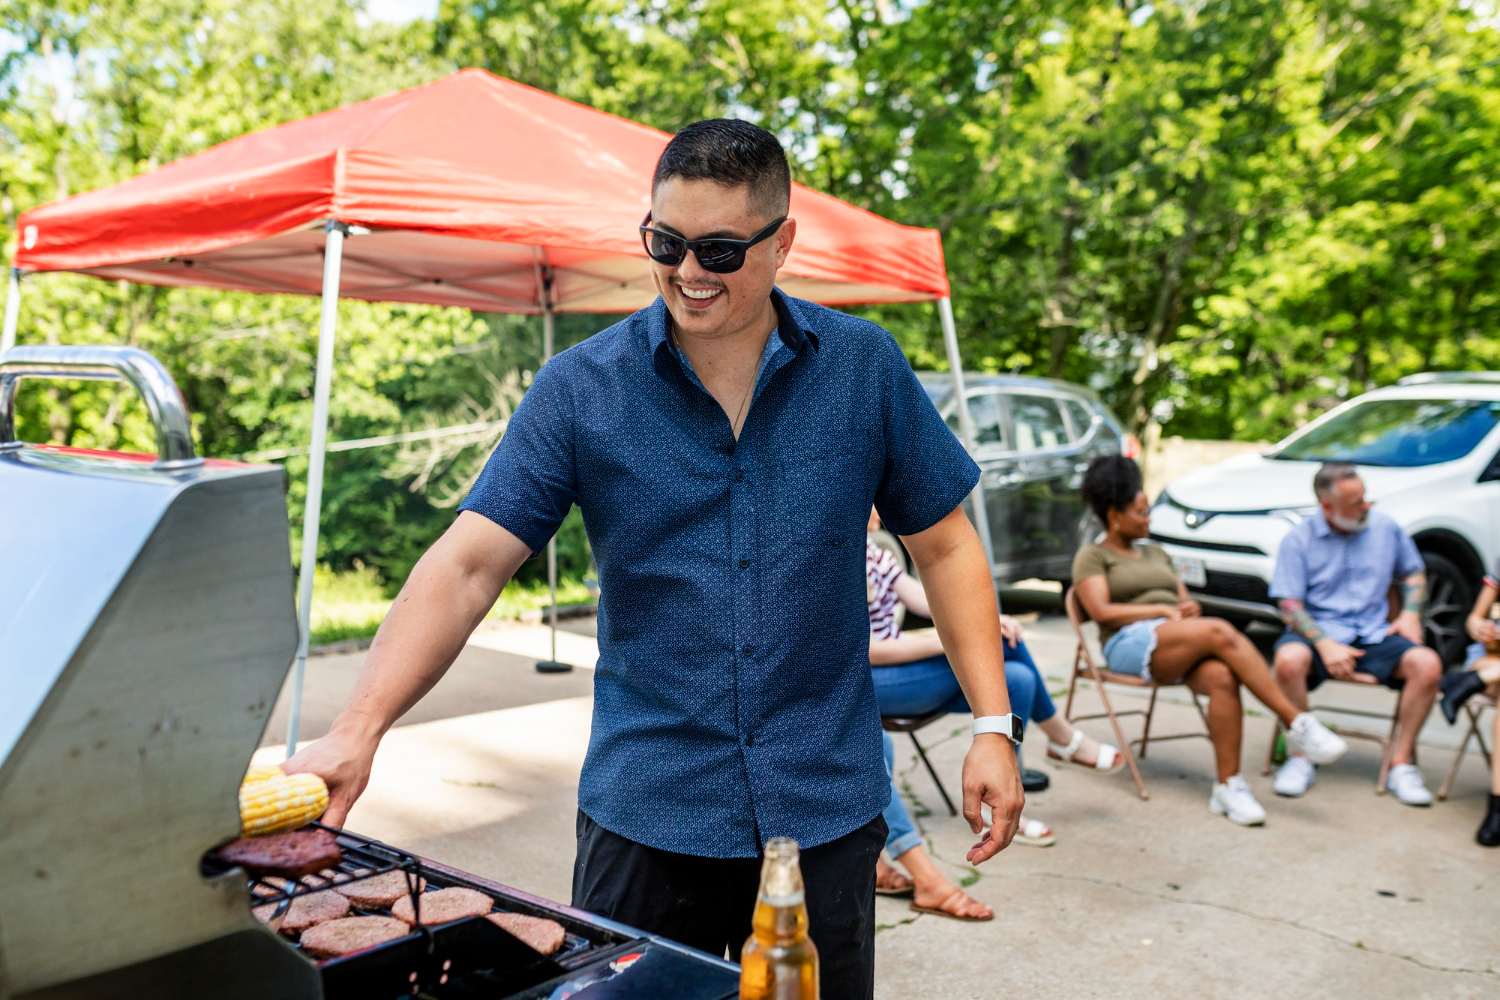 man cooking best tailgating recipes for the big game on the gill in parking lot for friends